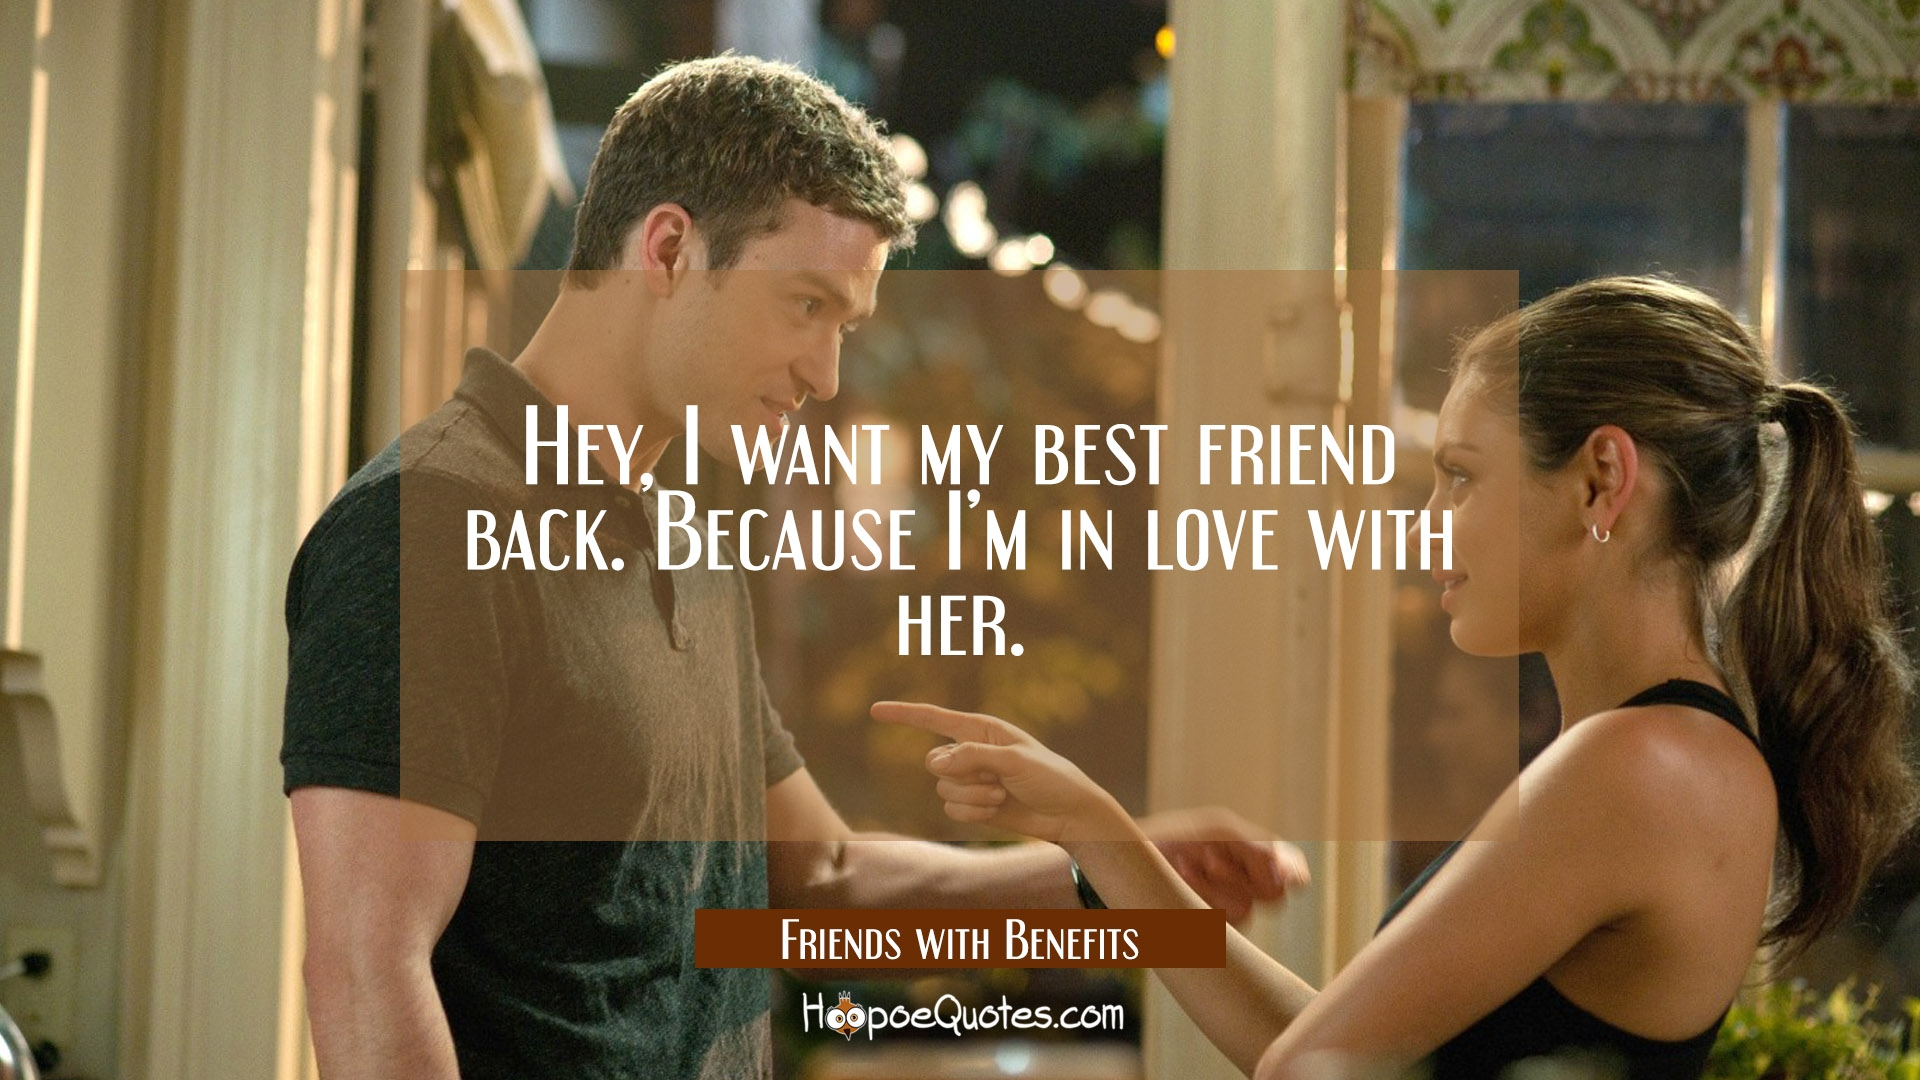 Hey, I Want My Best Friend Back. Because I'm In Love With